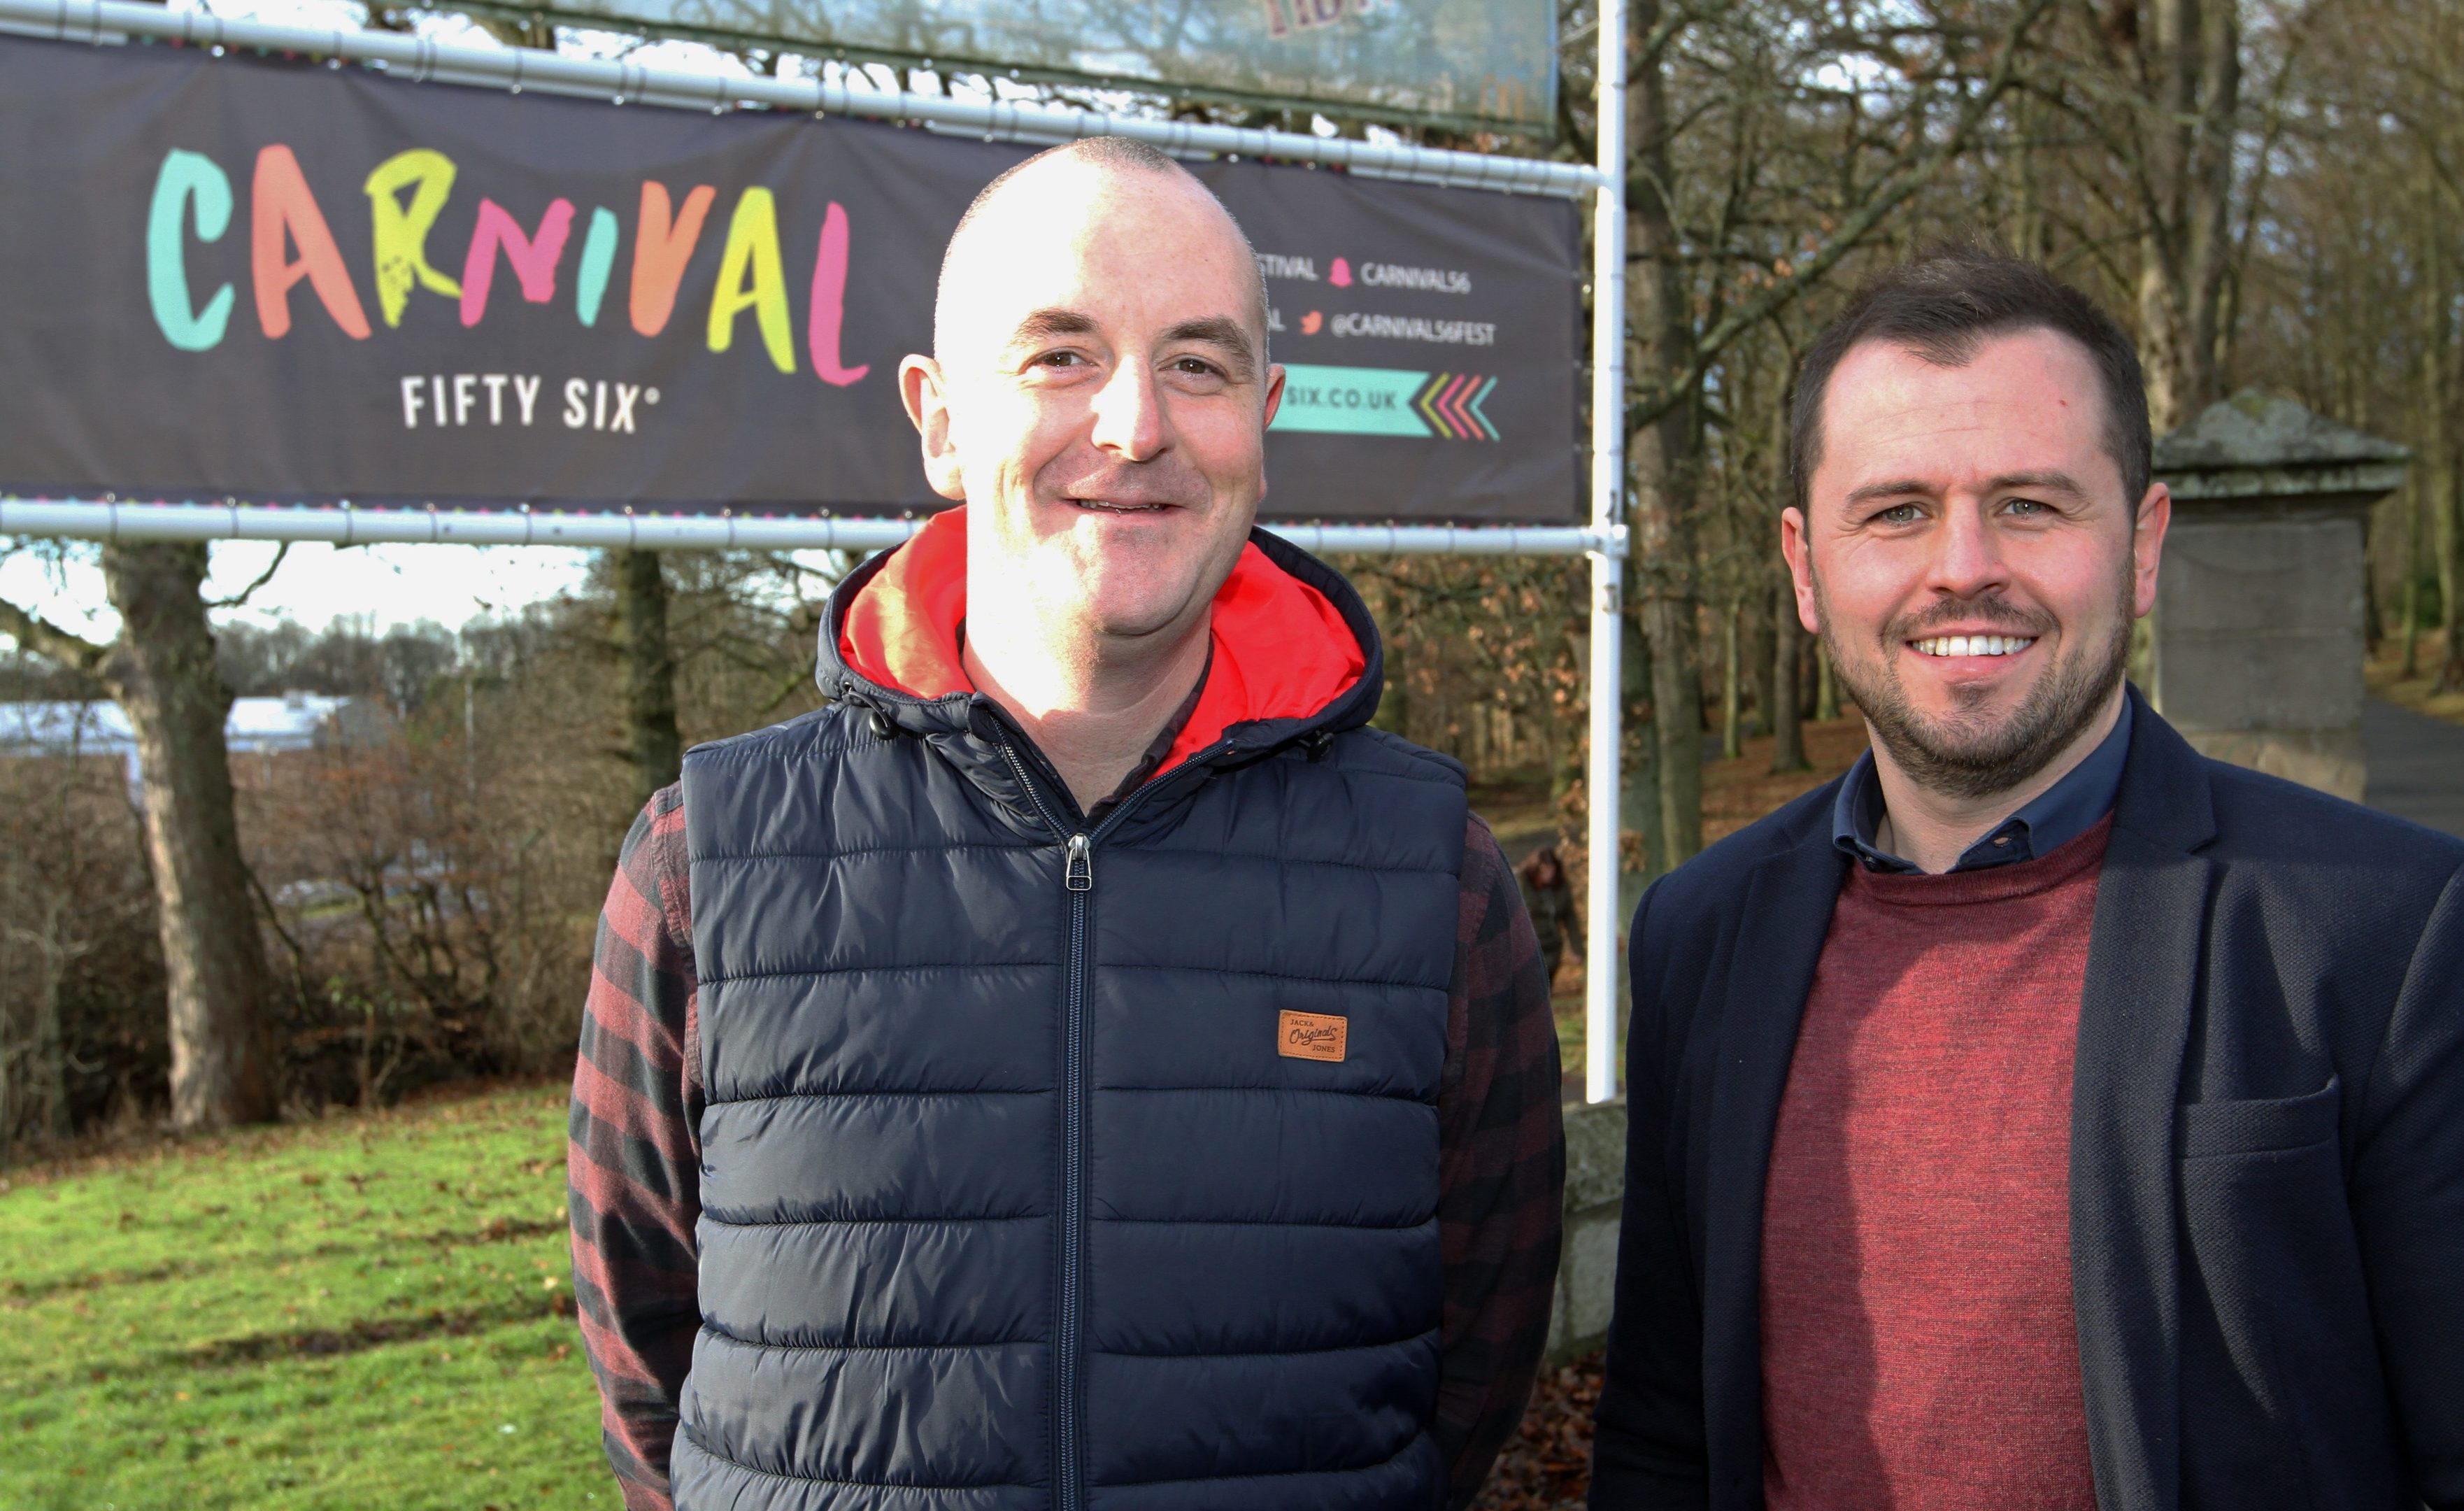 Carnival Fifty Six event manager Steve Reynolds and director Craig Blyth outside Camperdown as the event is set to attract thousands of music fans